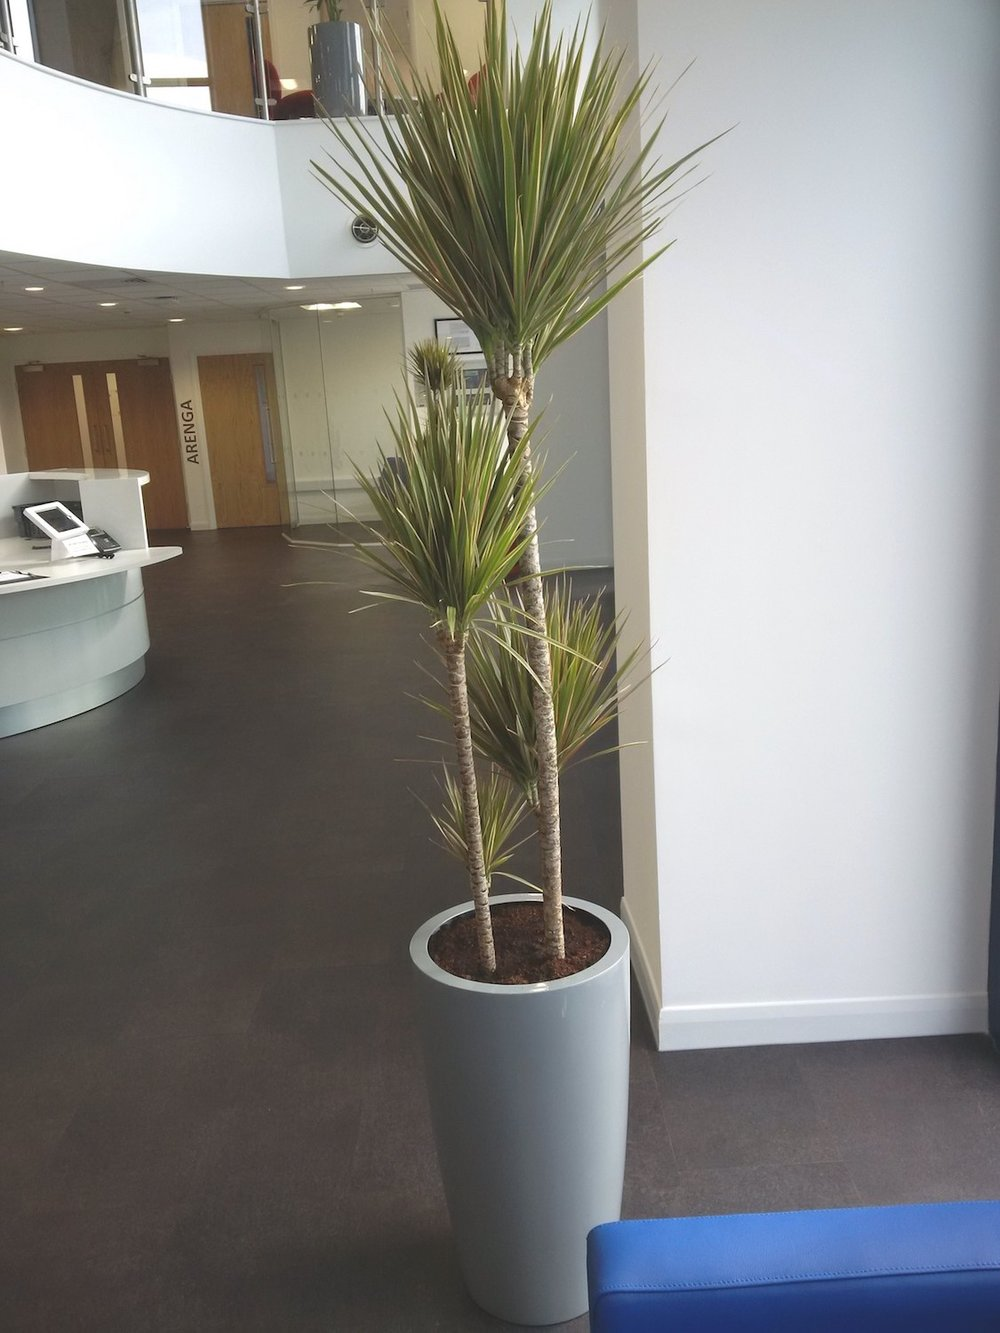 hill-brush-plantcare-interior-plants-trees-bristol-image-3